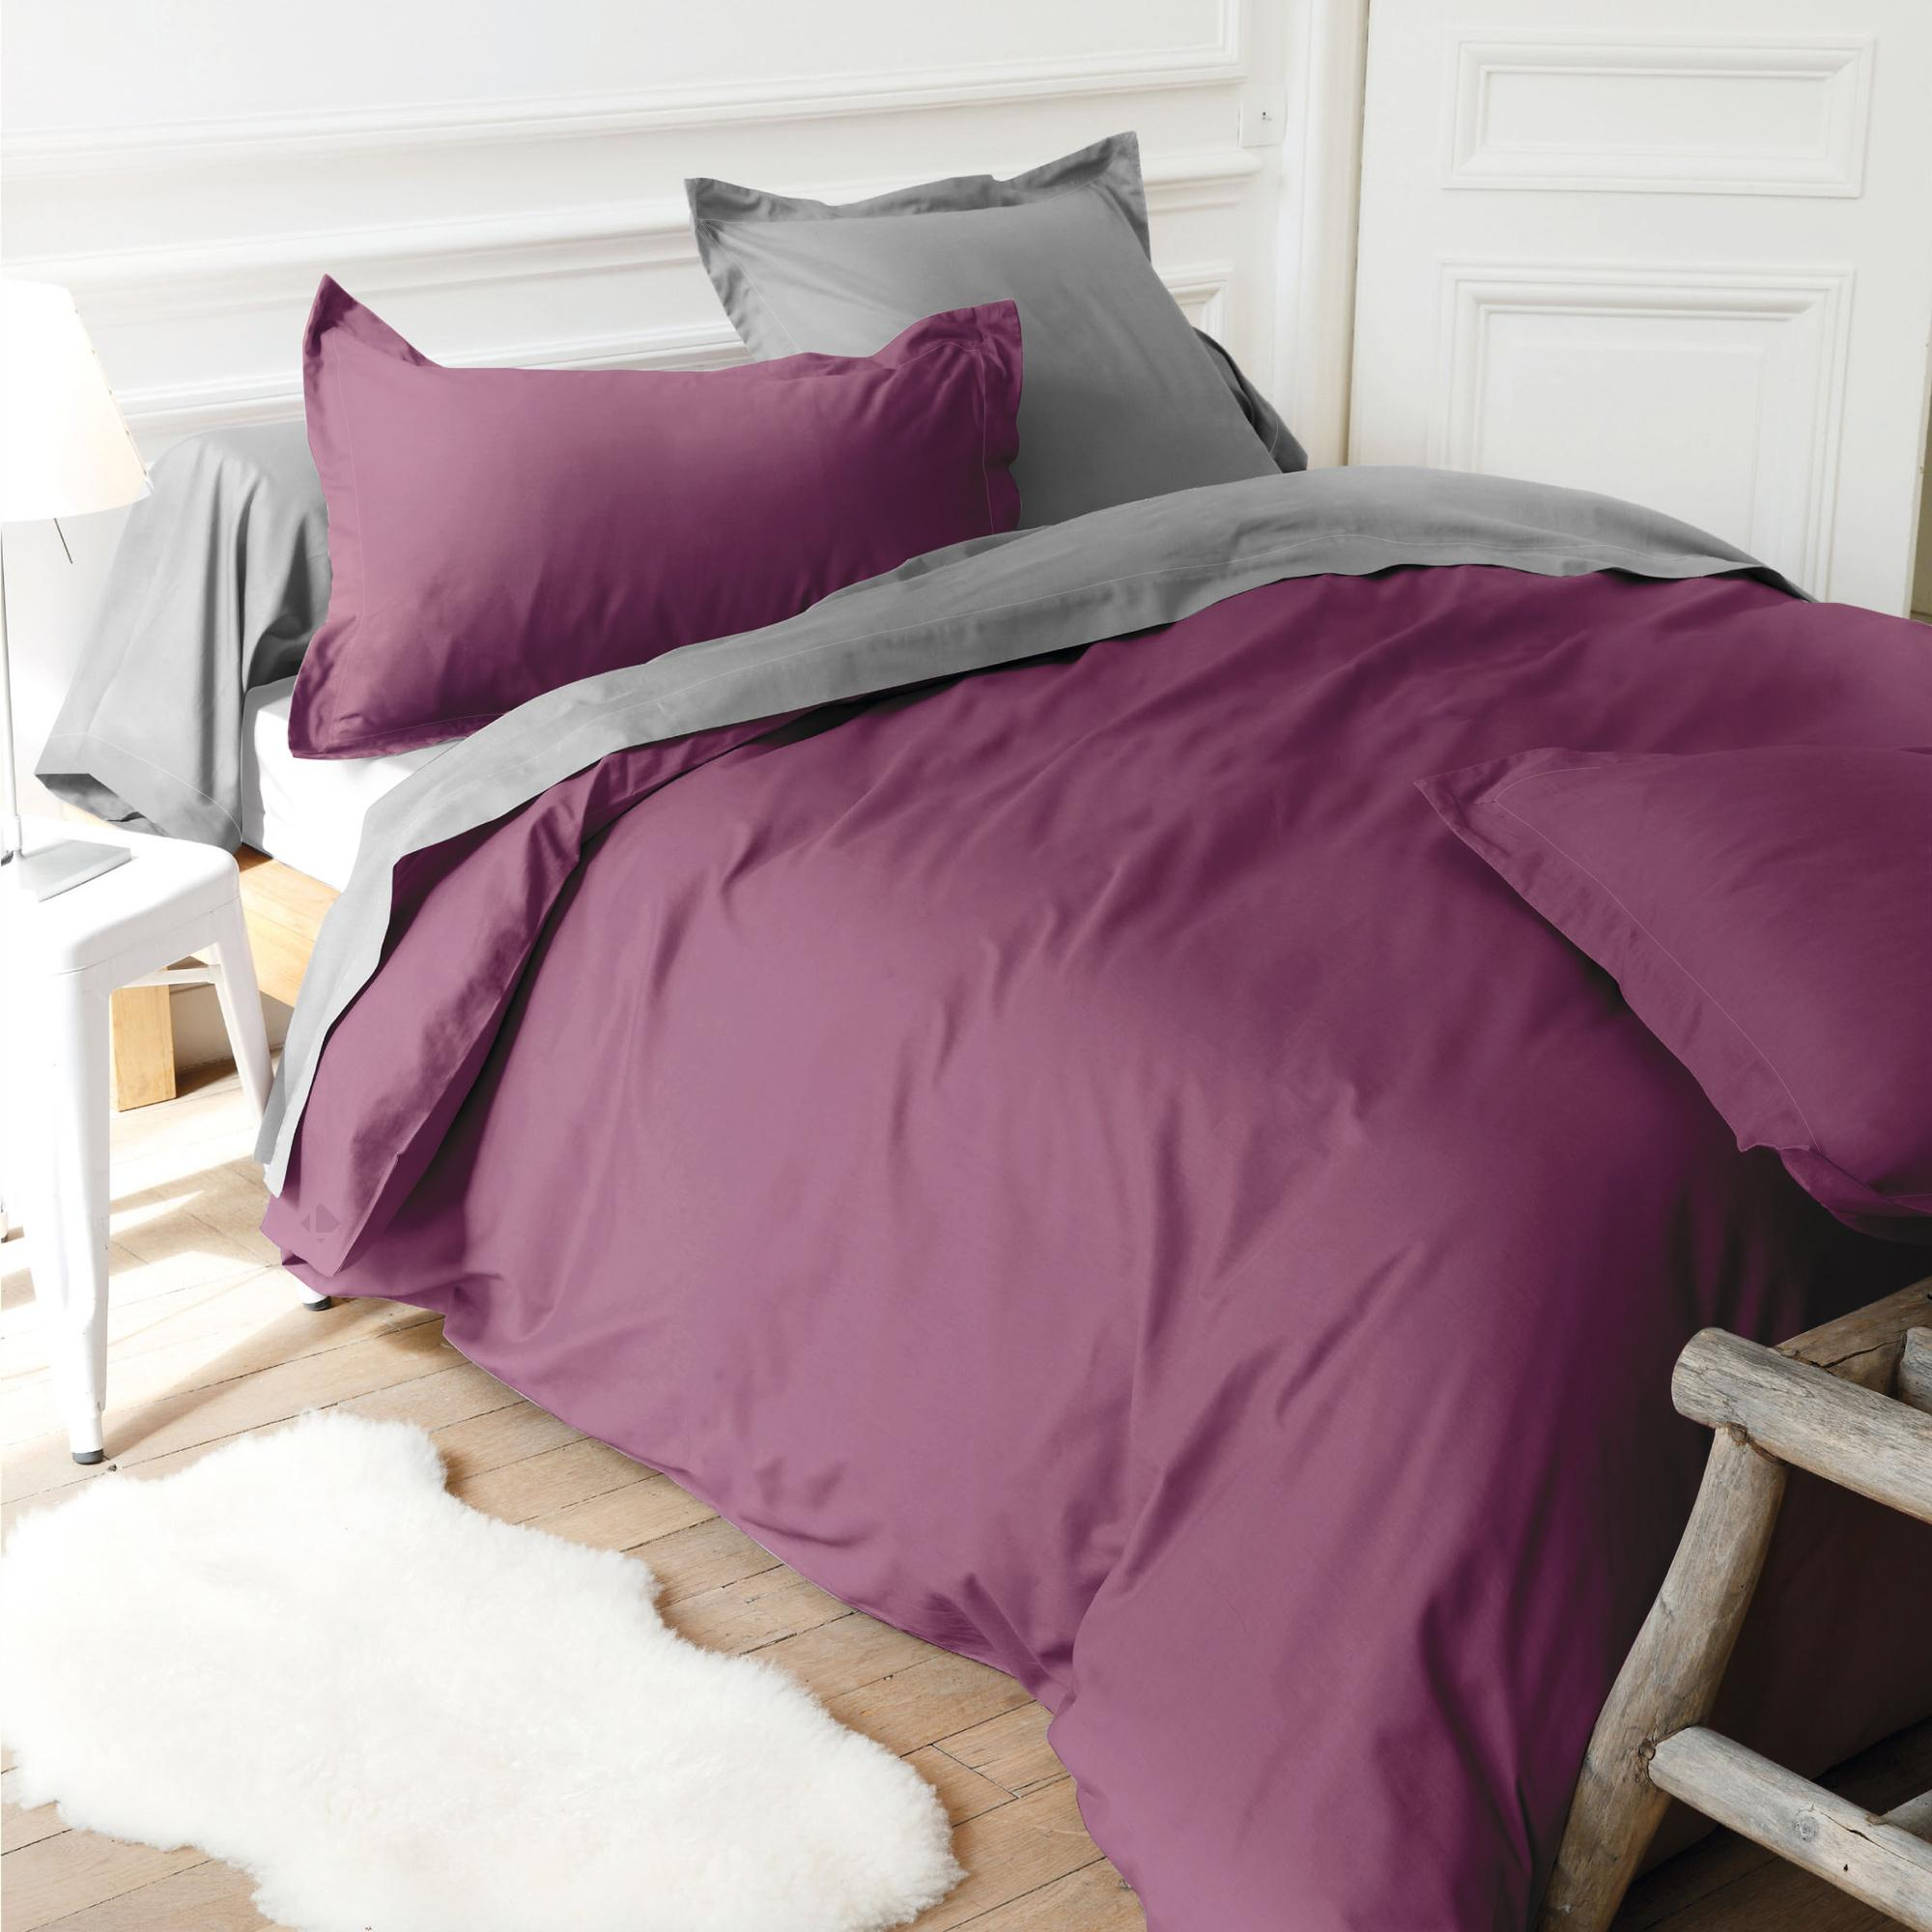 housse de couette 280x240cm uni pur coton alto violet raisin linnea linge de maison et. Black Bedroom Furniture Sets. Home Design Ideas